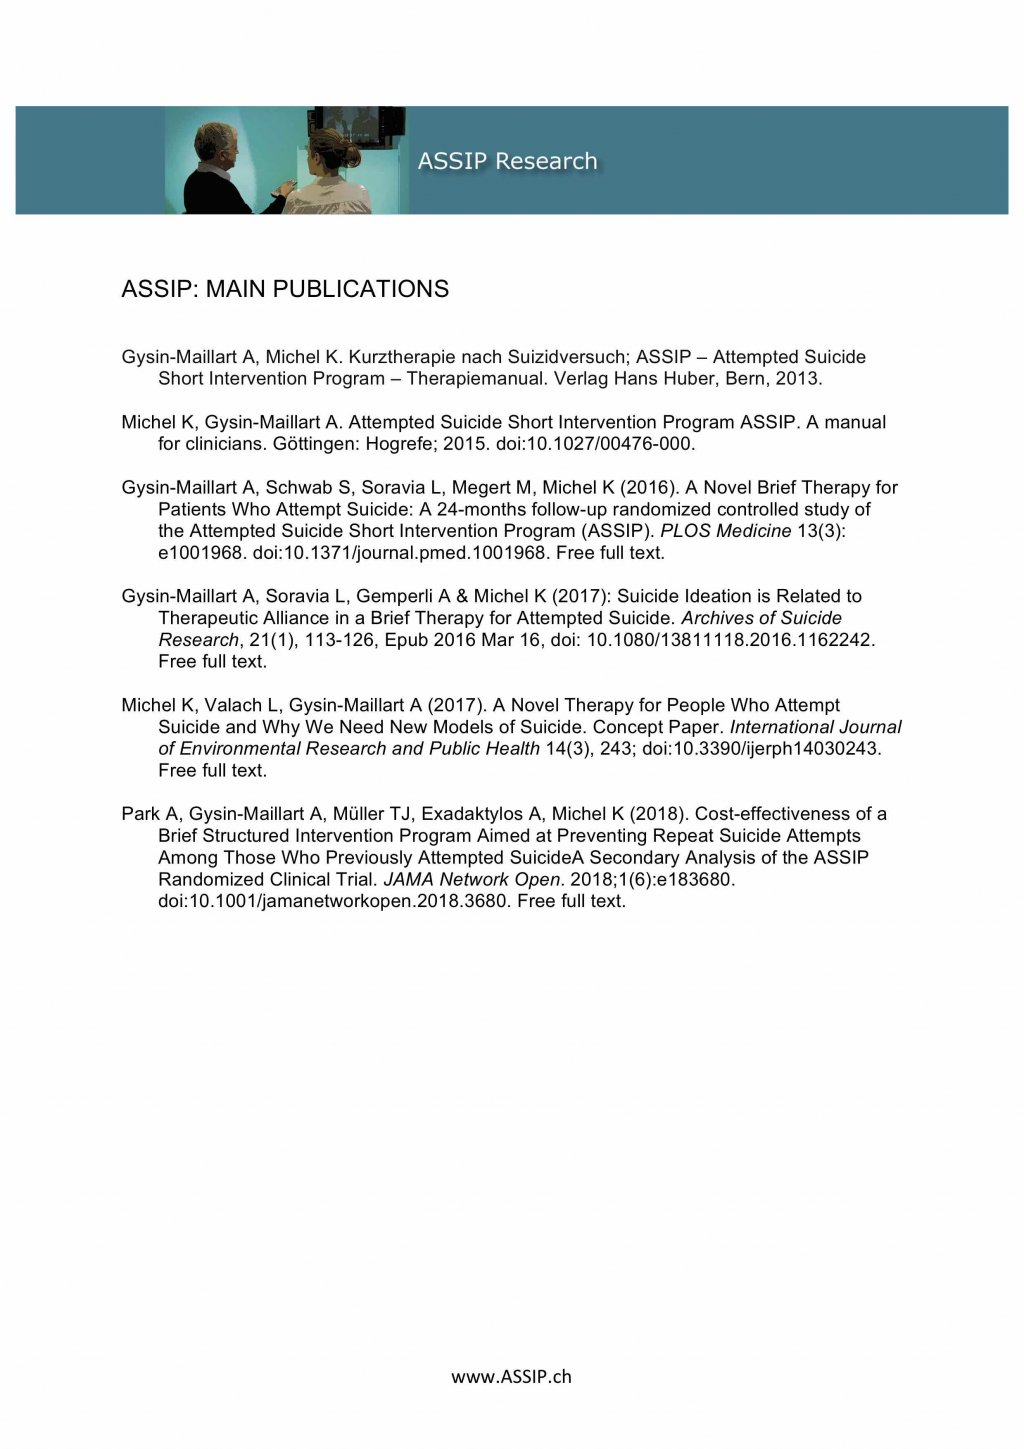 List Main Publications Assip